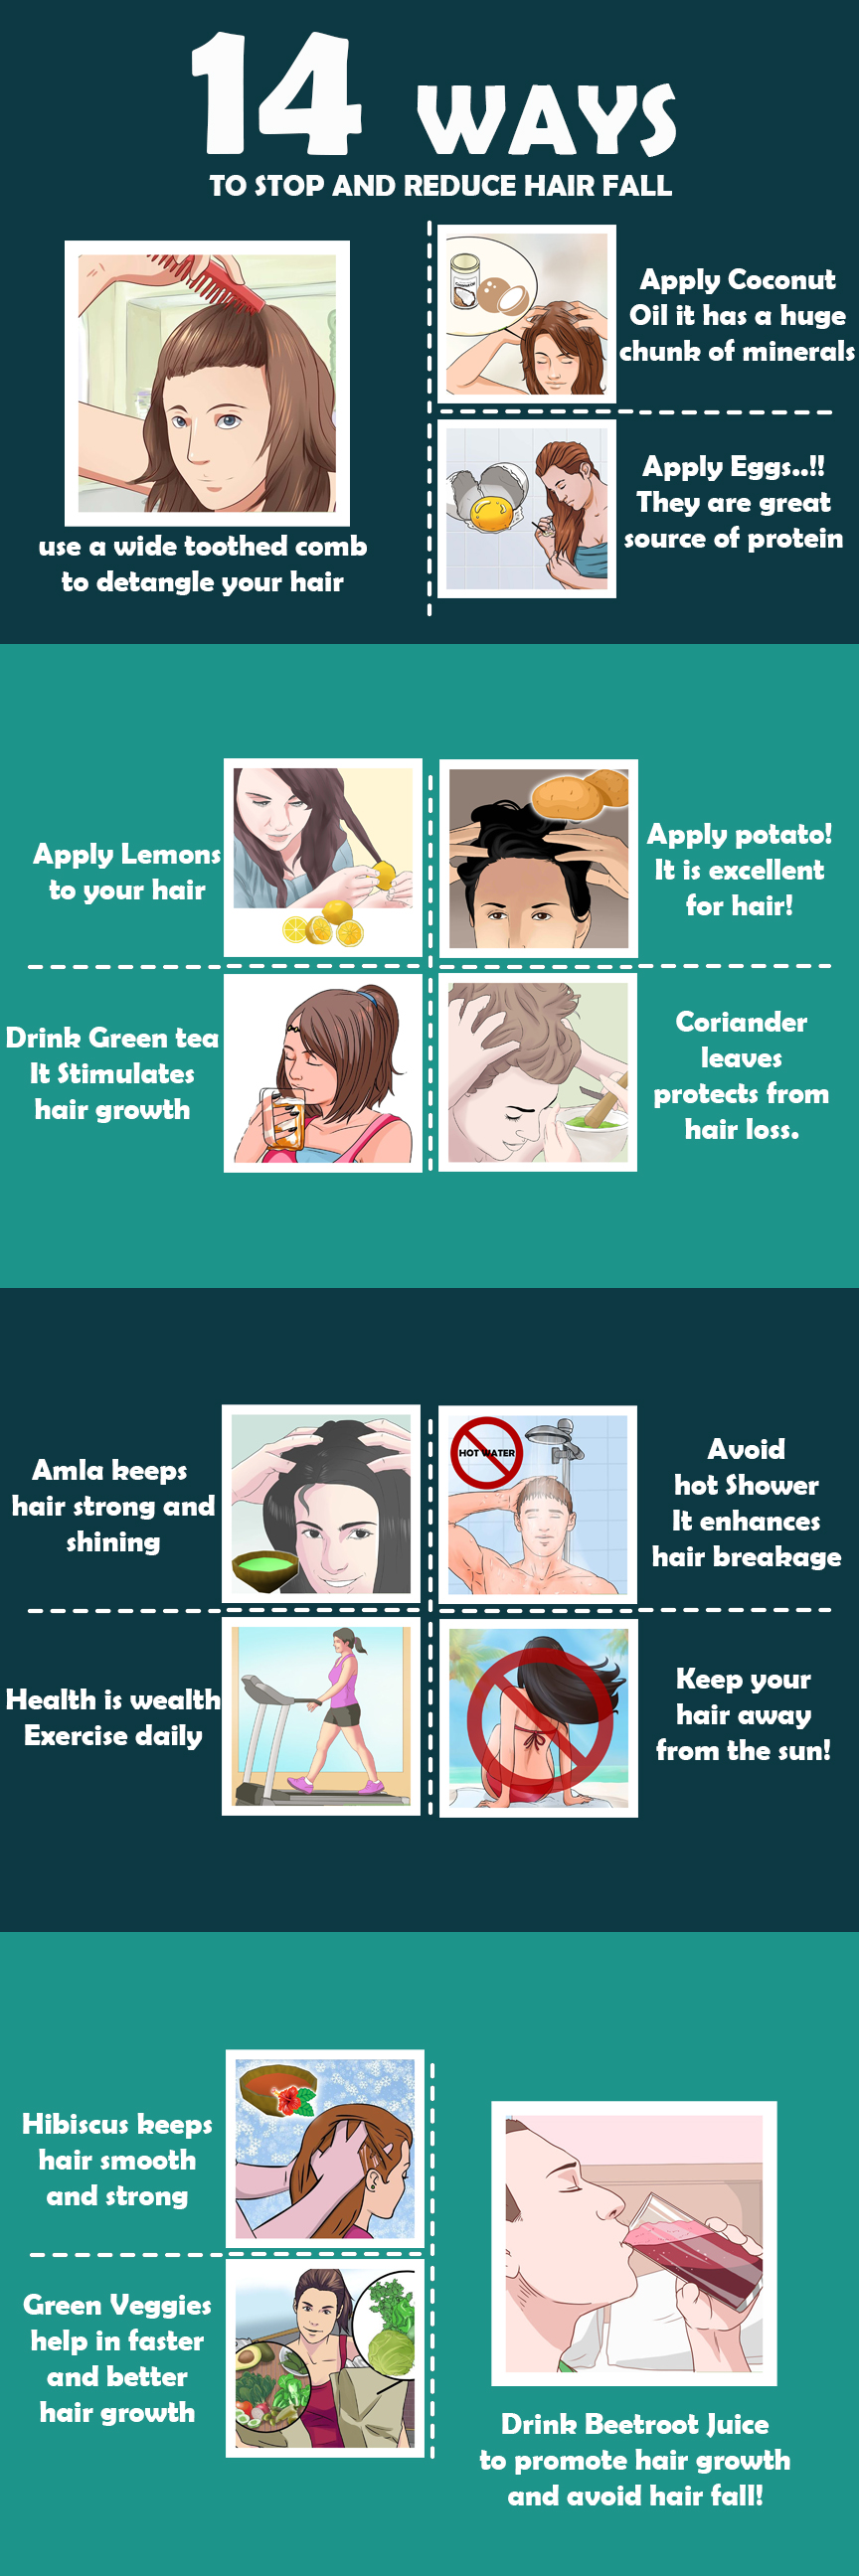 How to stop and reduce hair fall